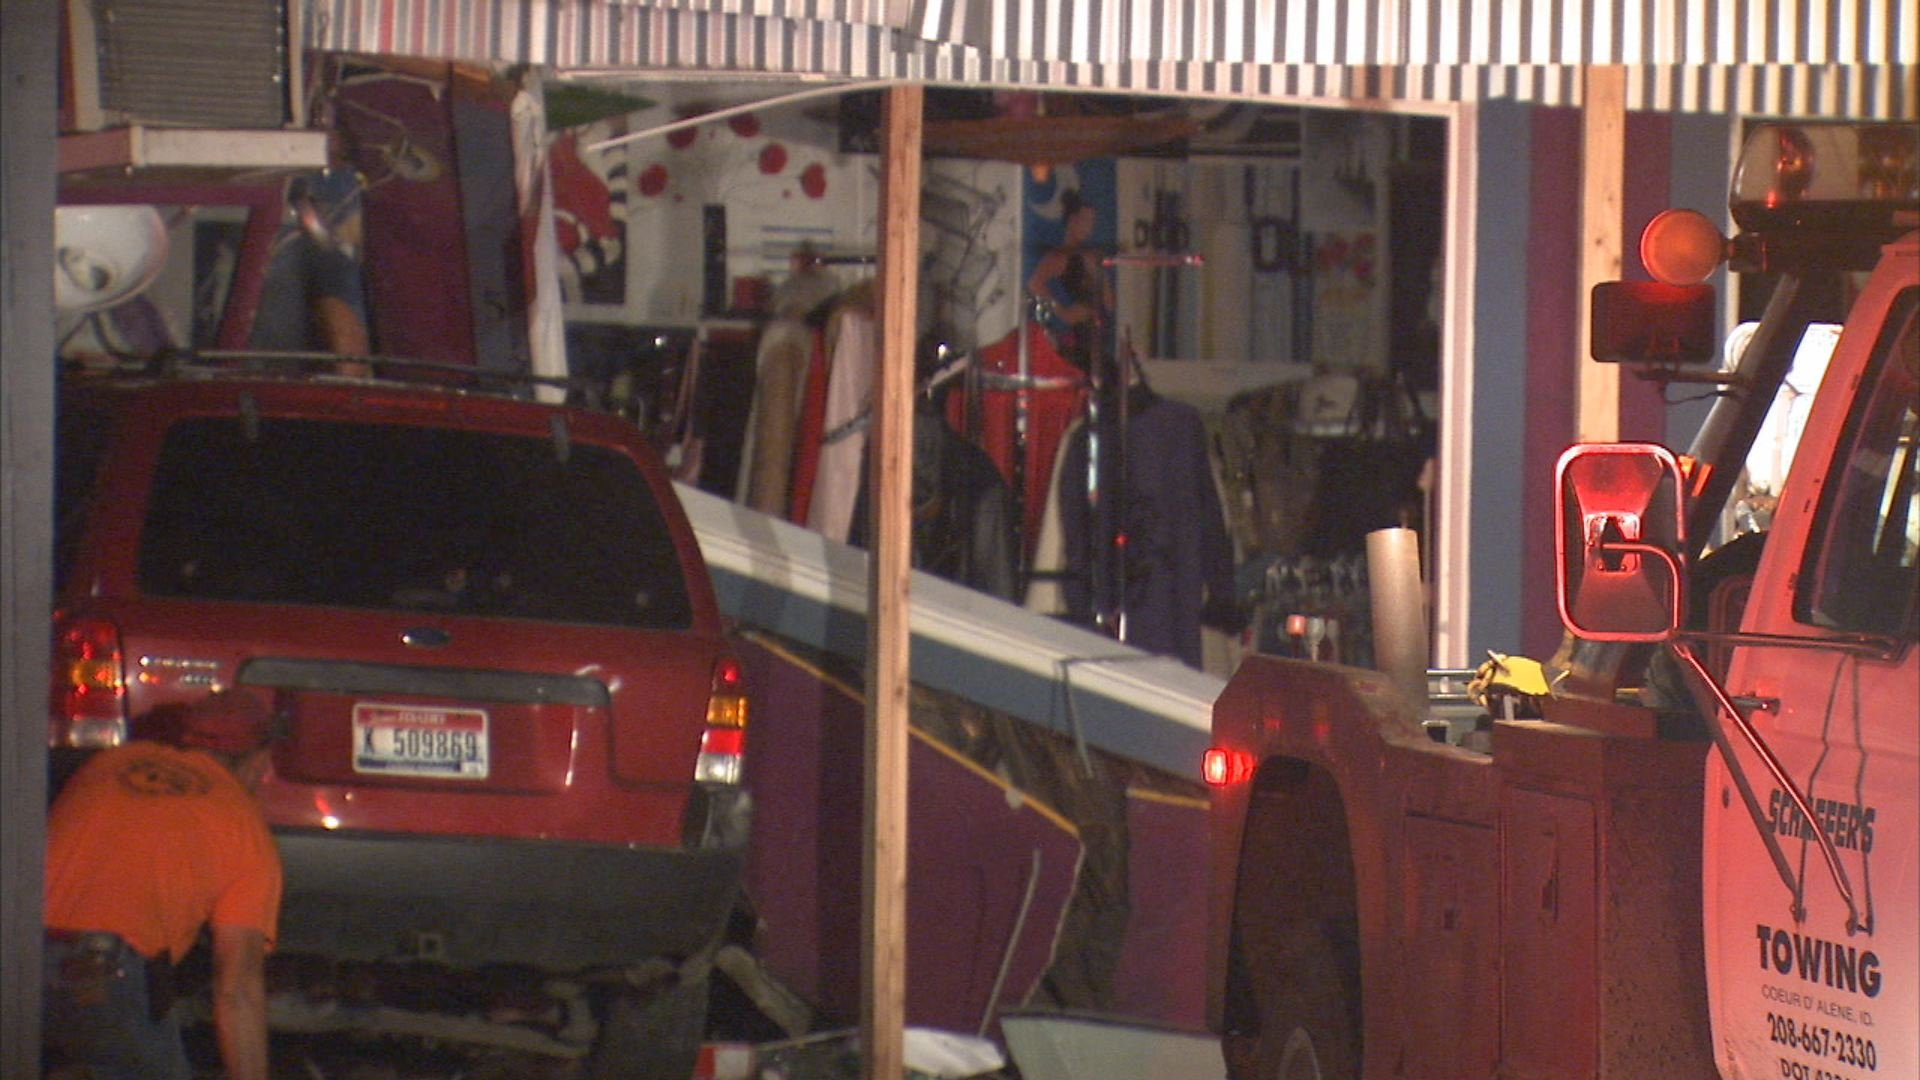 An SUV crashed into a boutique Sunday night in Coeur d'Alene